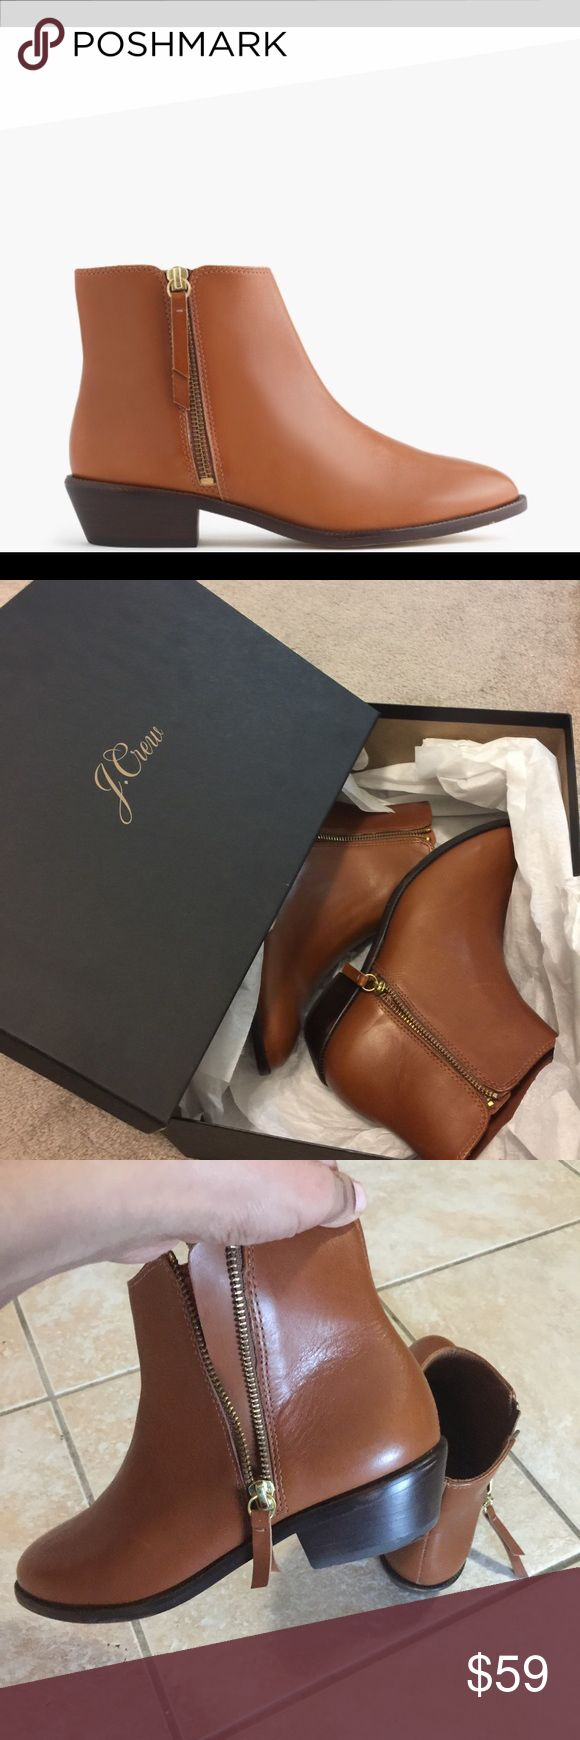 "J.Crew ""Frankie"" ankle boots Size 8 Gorgeous tan Leather ankle boot, made in Brazil, gold zipper, in EXCELLENT condition. Staple for fall/winter, very versatile, looks great with jeans, leggings and dresses. Absolutely beautiful and comfortable pair! J. Crew Shoes Ankle Boots & Booties"